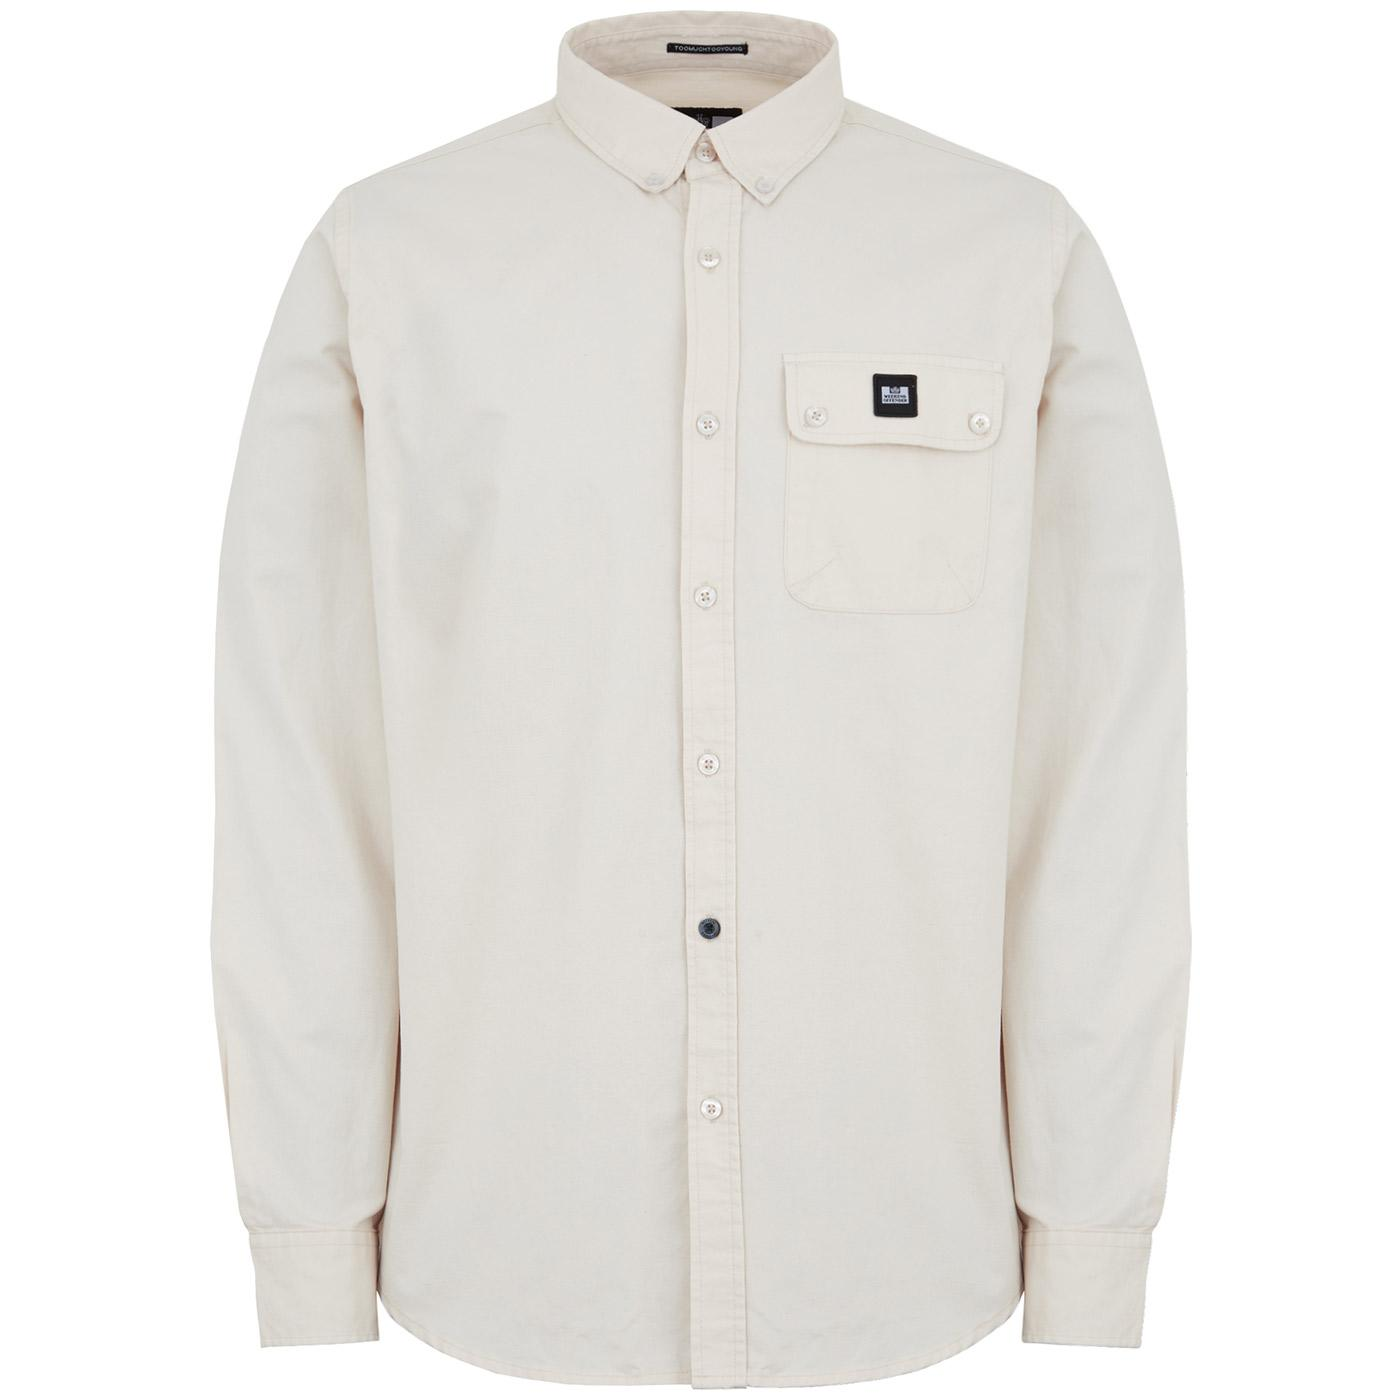 Postiano WEEKEND OFFENDER Military Ranger Shirt C